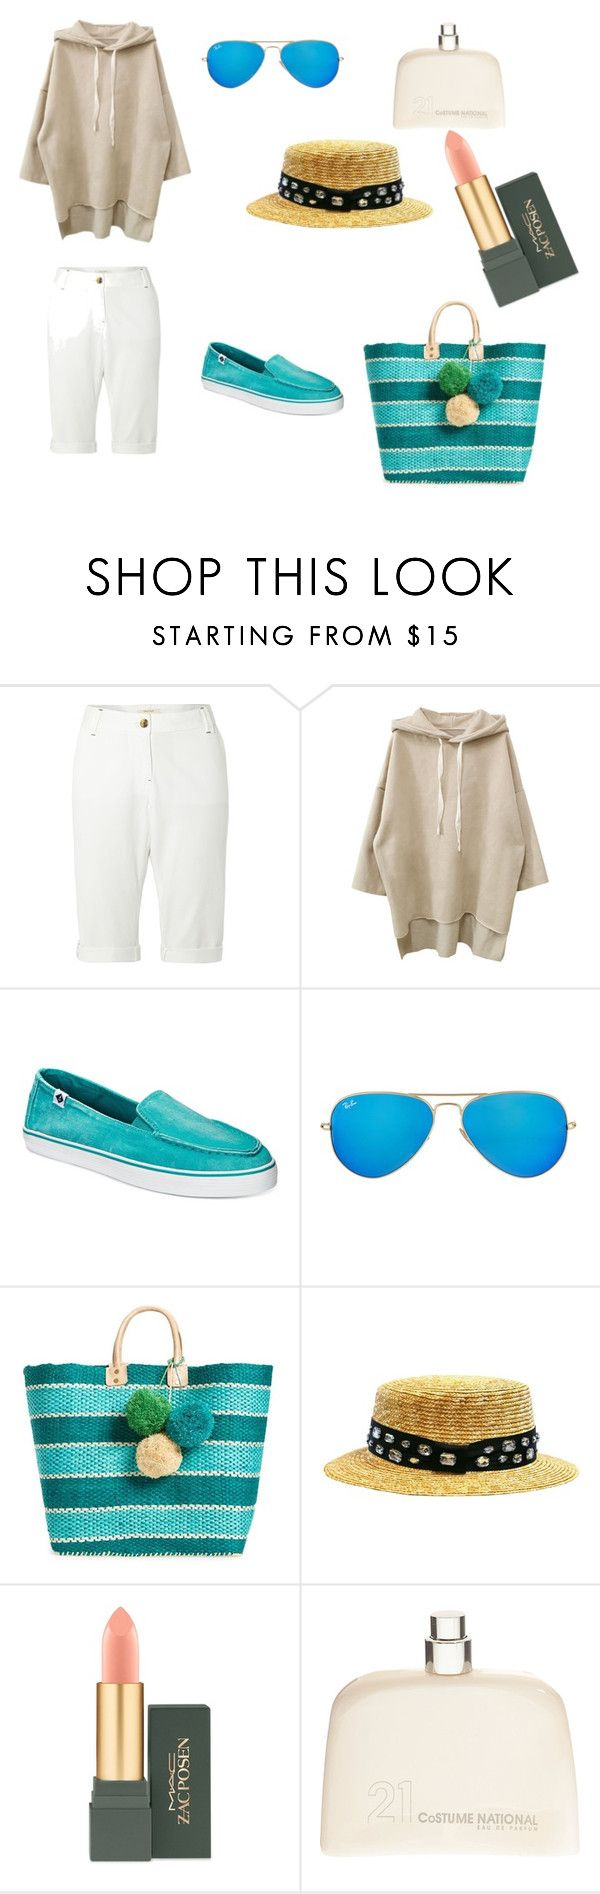 Untitled #21 by janka-dzurillova on Polyvore featuring White Stuff, Sperry, Mar y Sol, Ray-Ban, COSTUME NATIONAL and MAC Cosmetics